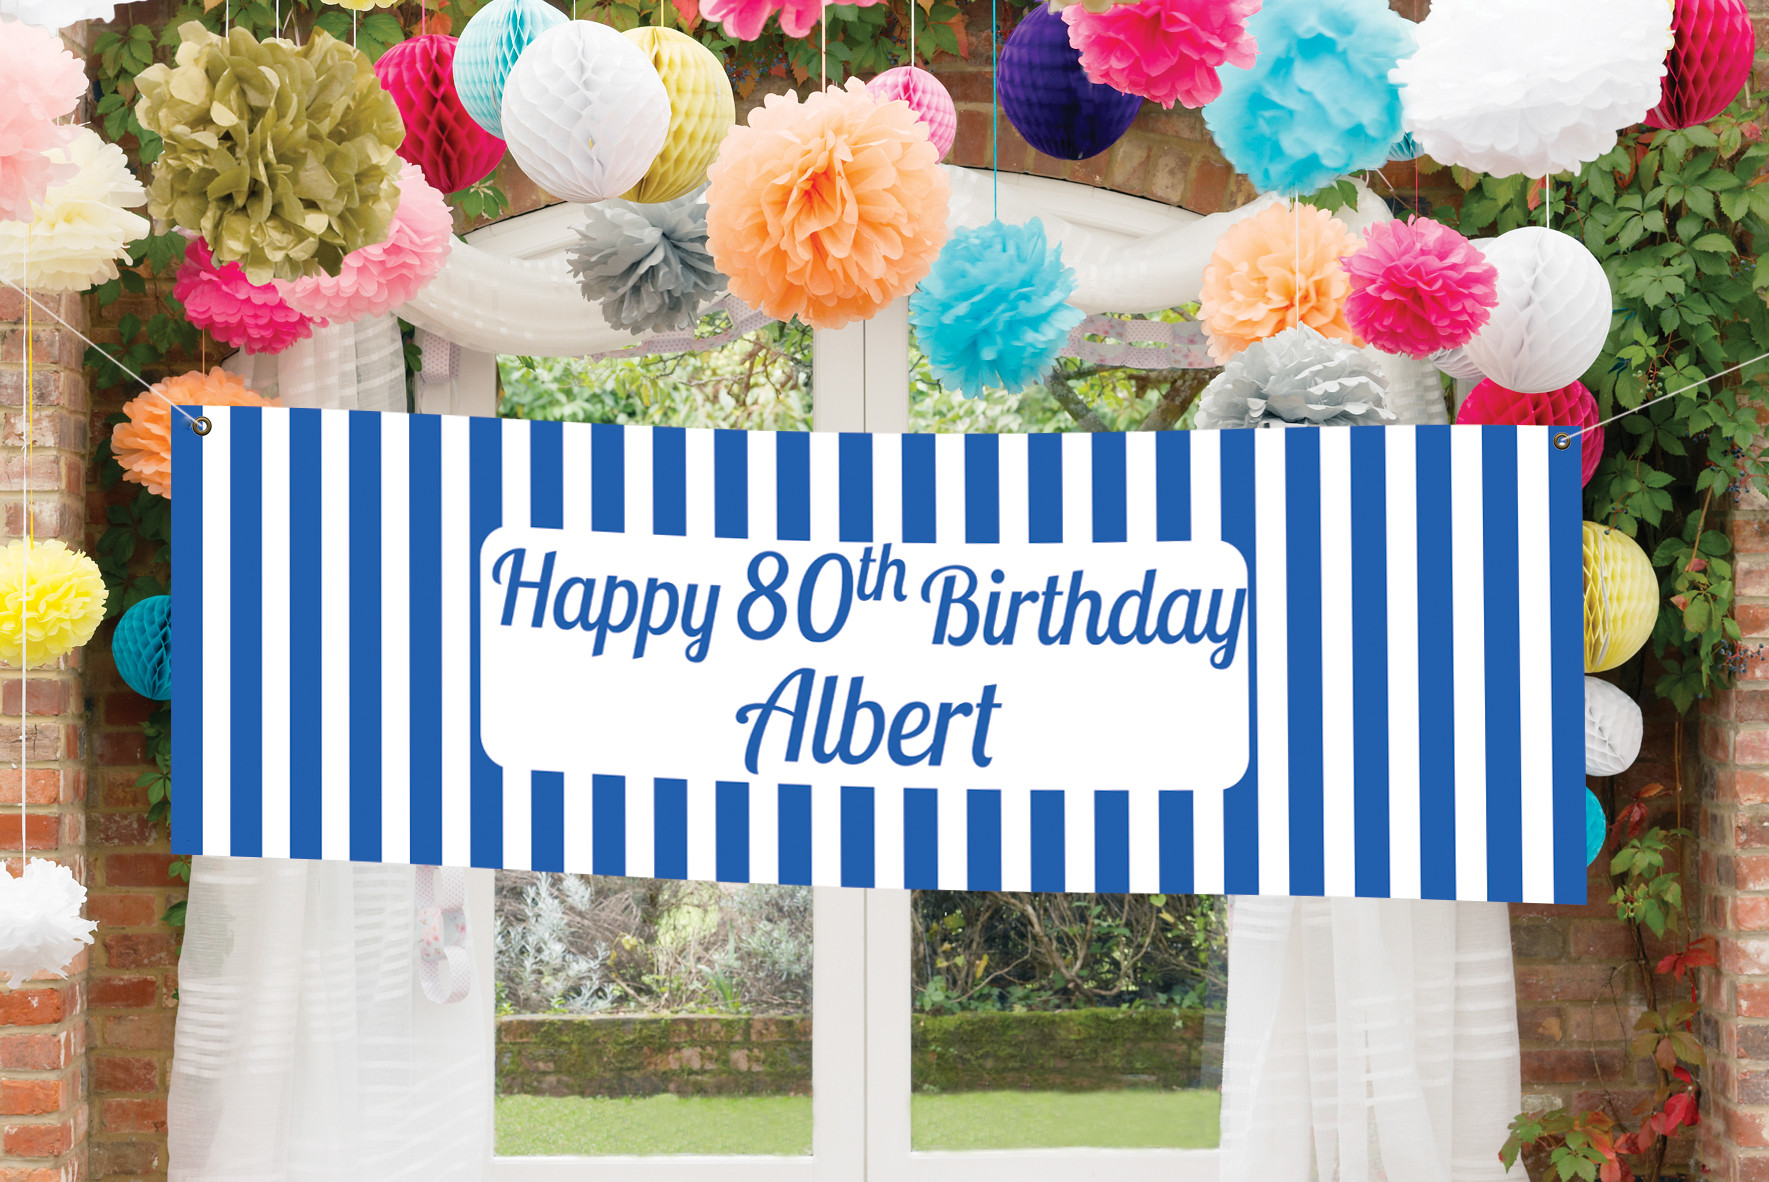 Best ideas about 80th Birthday Decor . Save or Pin 80th Birthday Party Ideas Party Pieces Blog & Inspiration Now.